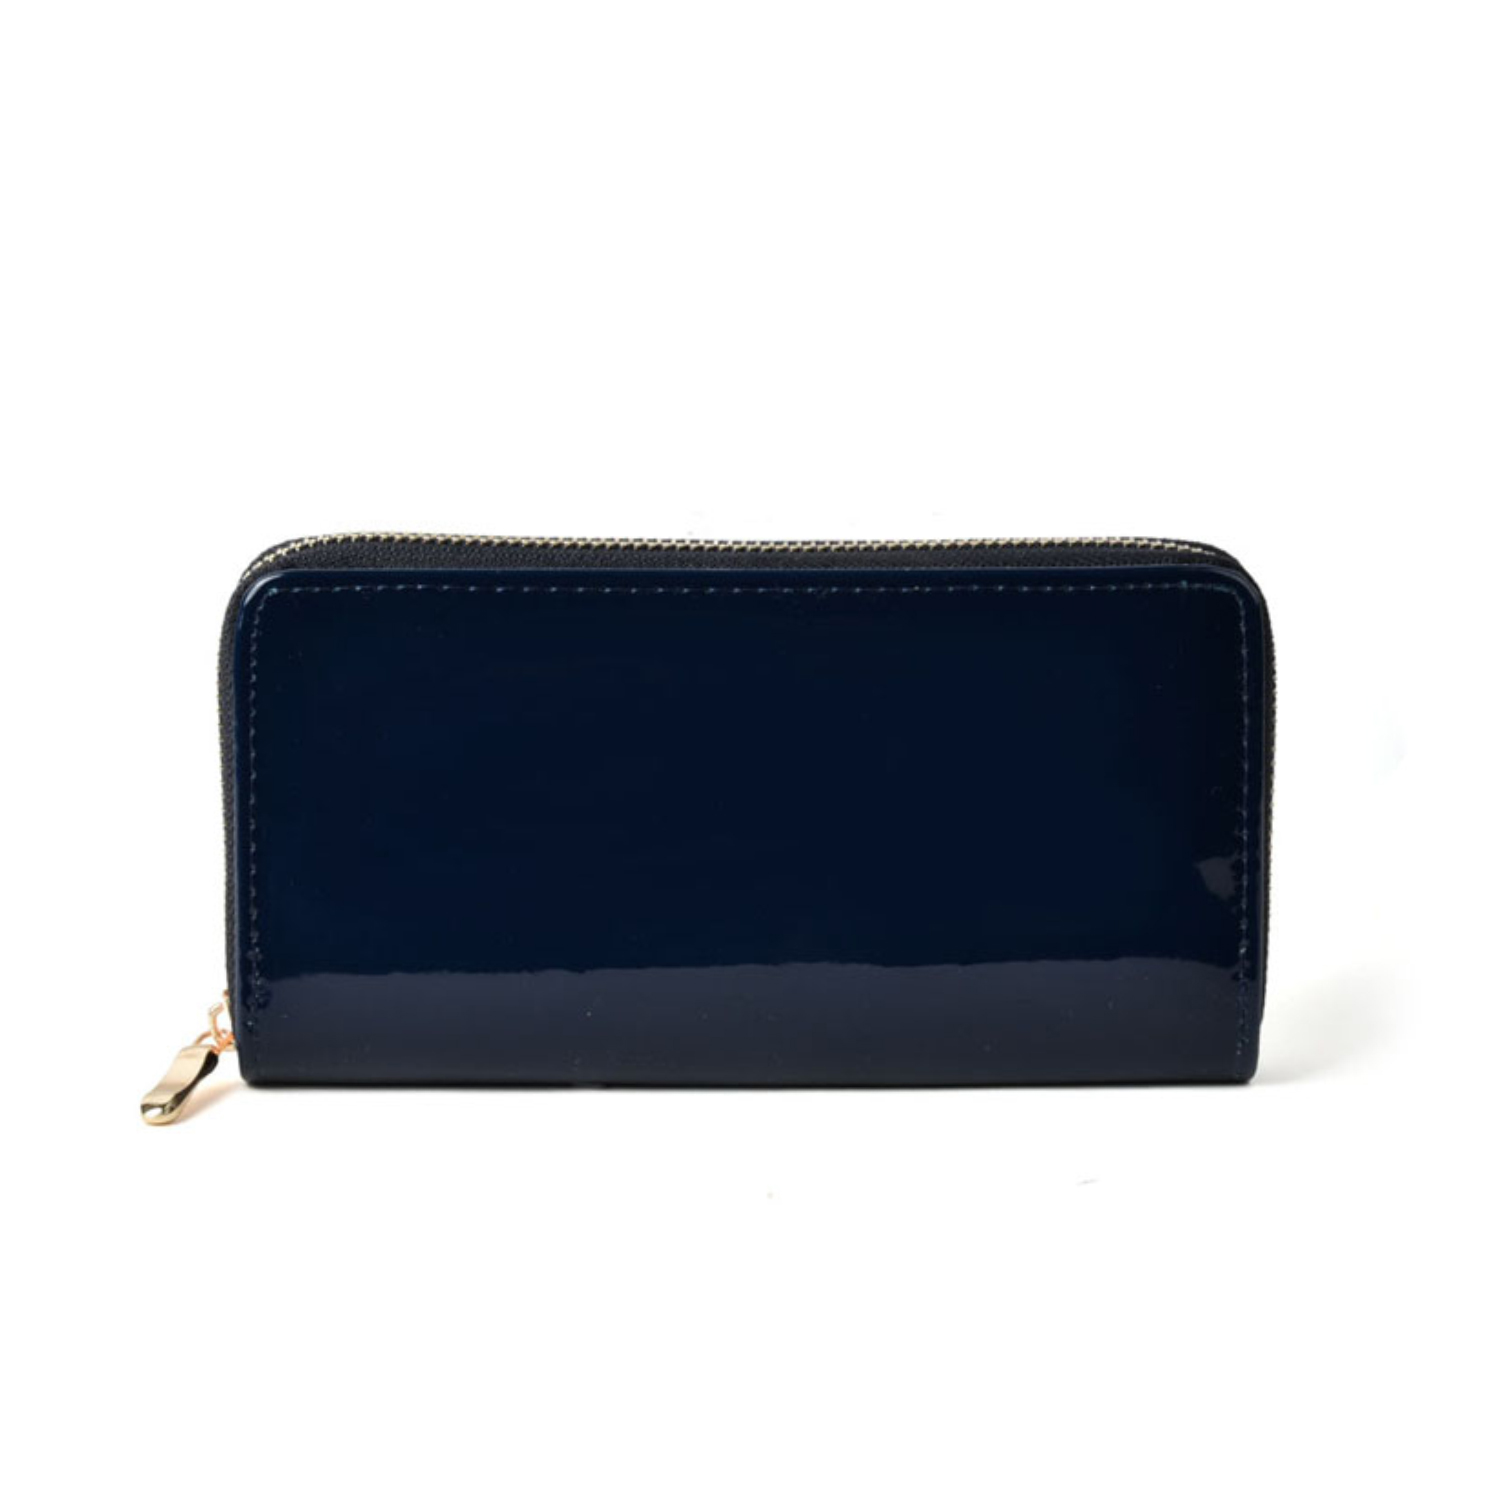 SallyYoung Women Wallet Card Holders Zipper Closure With Clean Wipe Soft Pu Leathers Women Fashion Solid